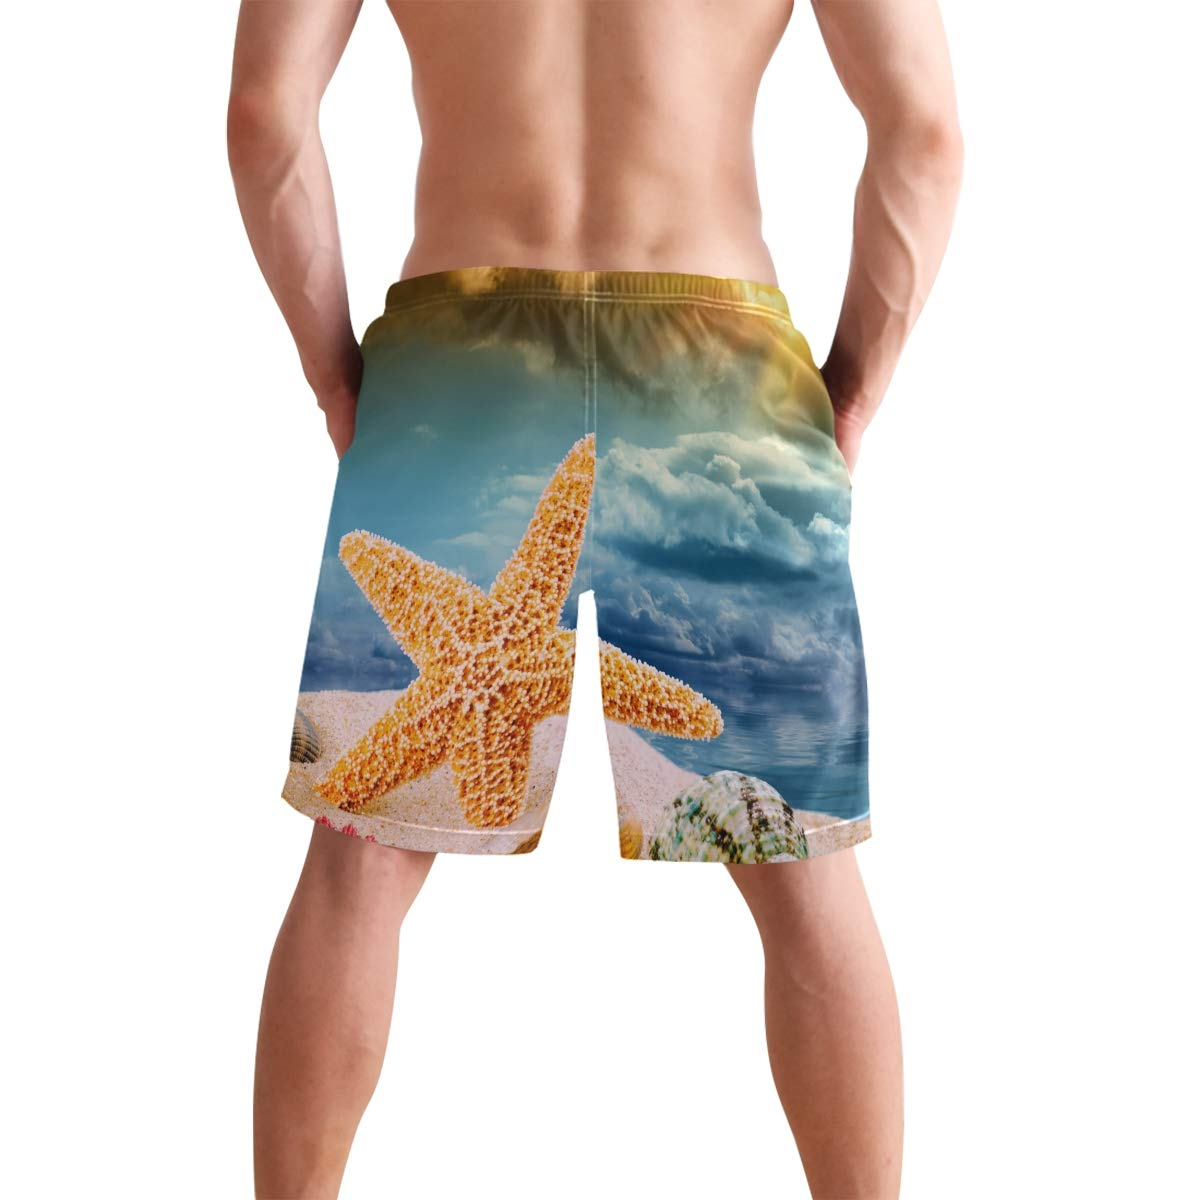 WIHVE Mens Swim Trunks Sea Star and Colorful Shells Quick Dry Beach Board Short with Mesh Lining